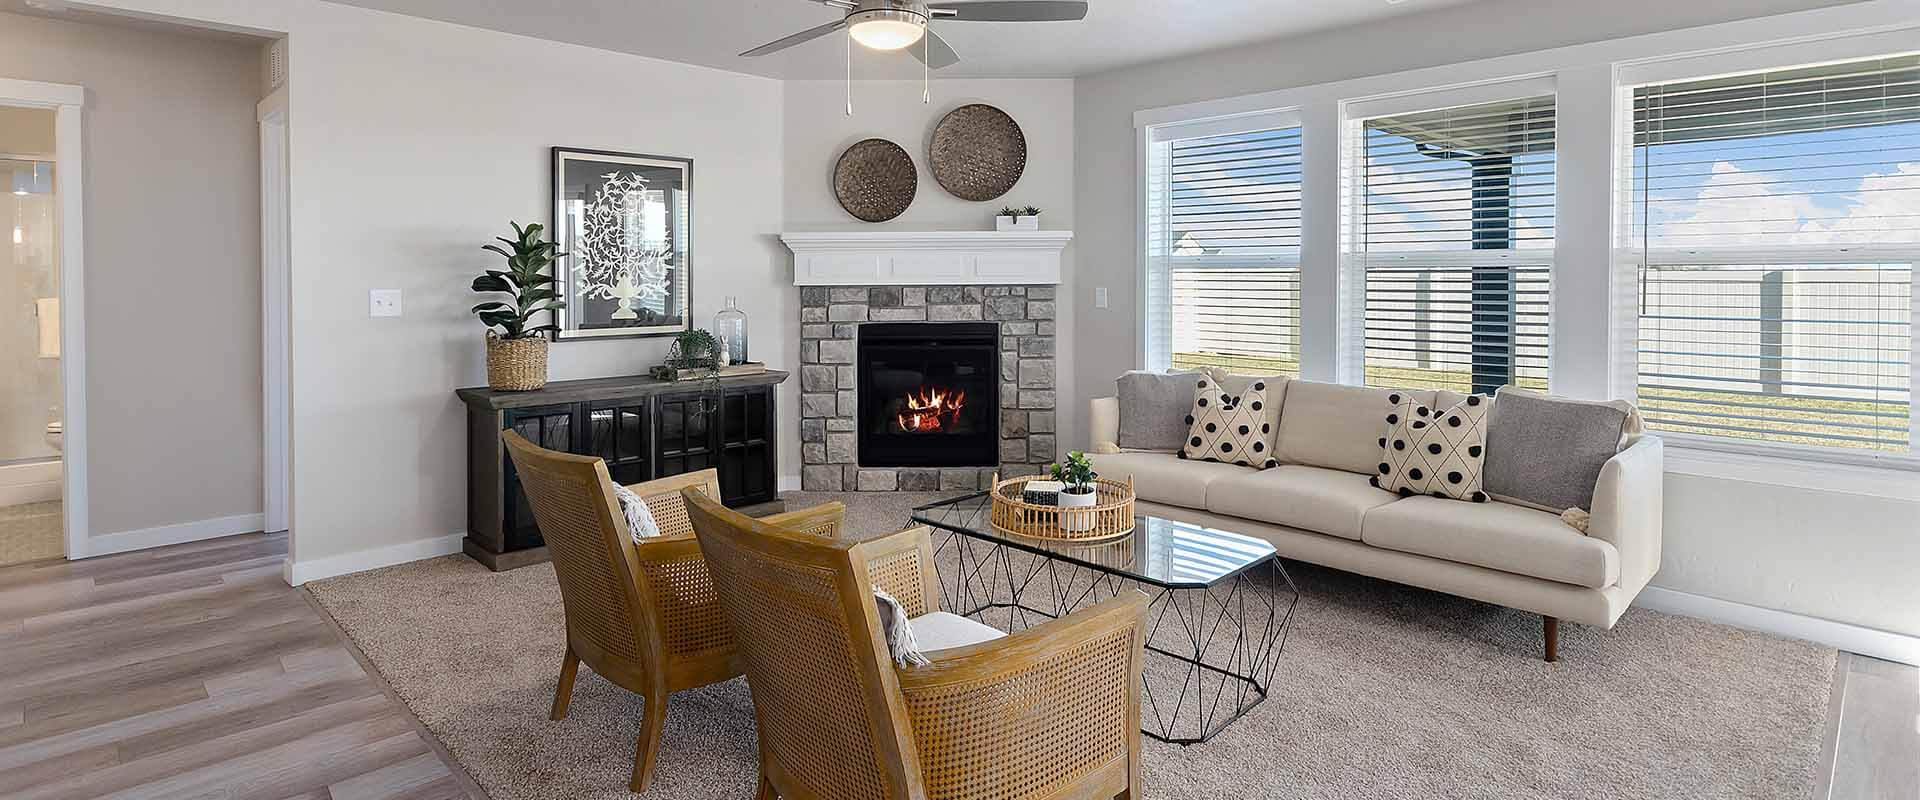 Spruce_Hubble_Homes_New_Homes_Boise_Great Room.jpg